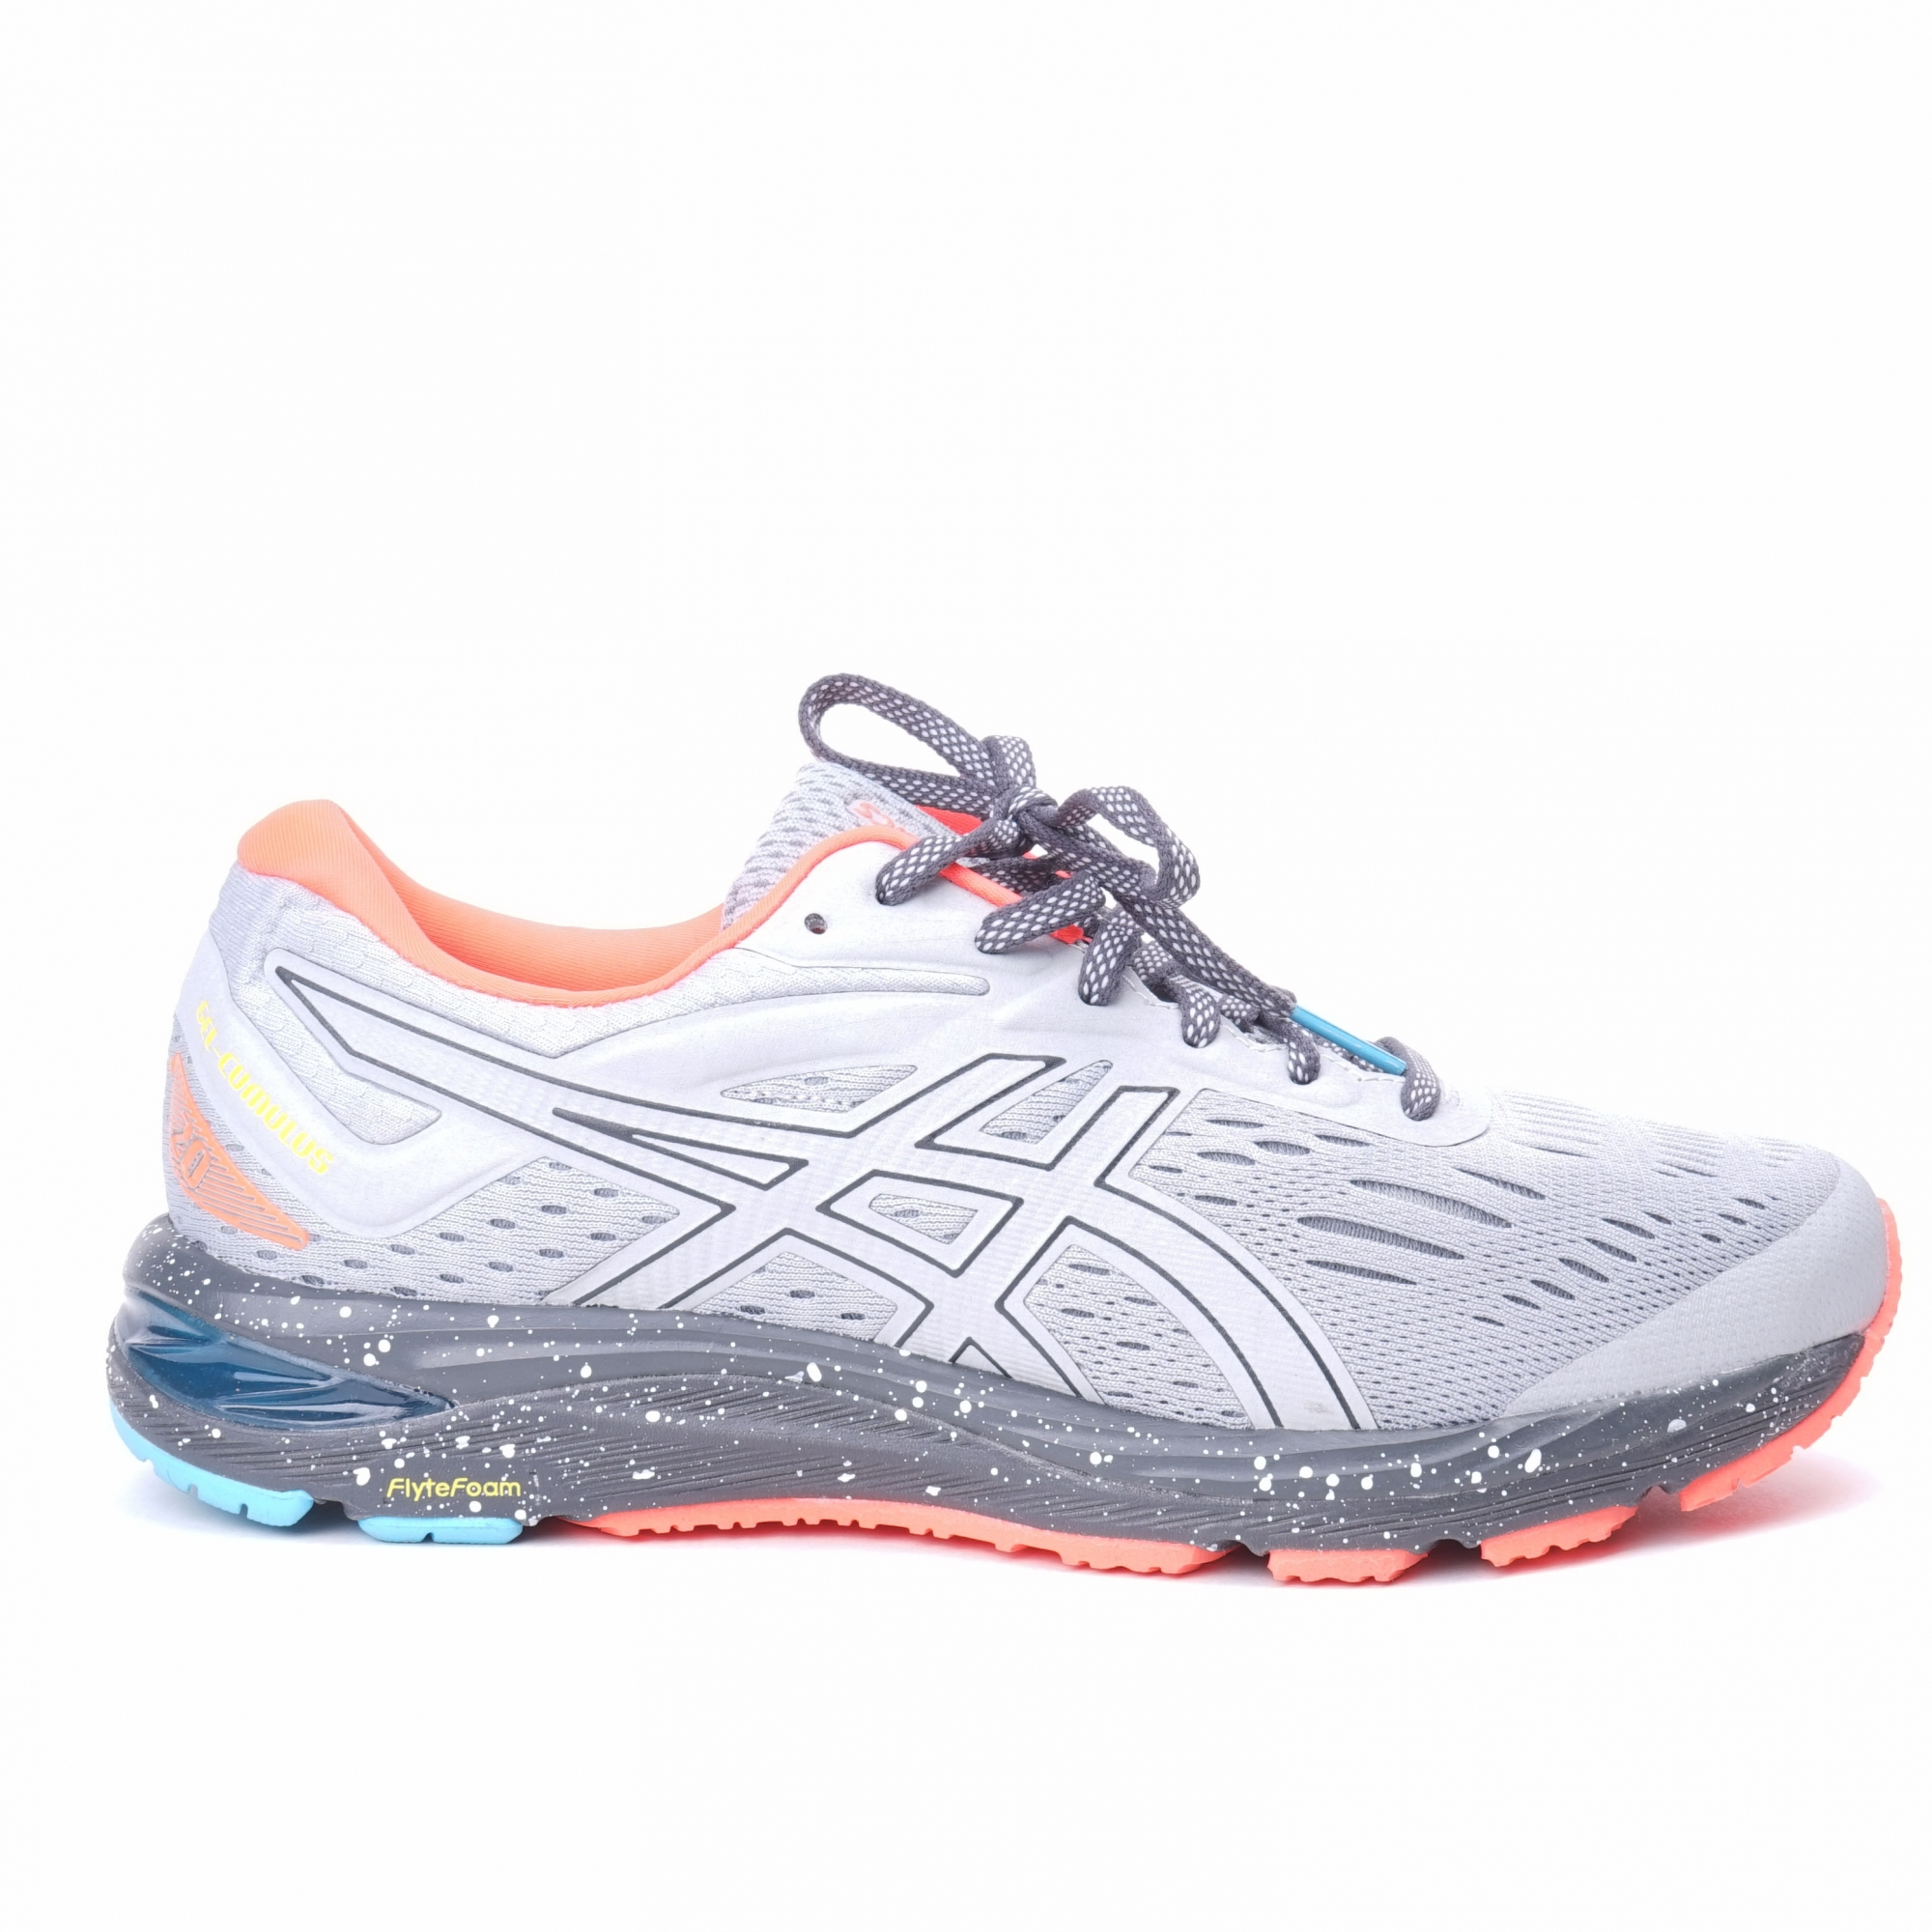 21afb88de1 ASICS GEL-CUMULUS 20 LE MID GREY/DARK GREY - Slash Store